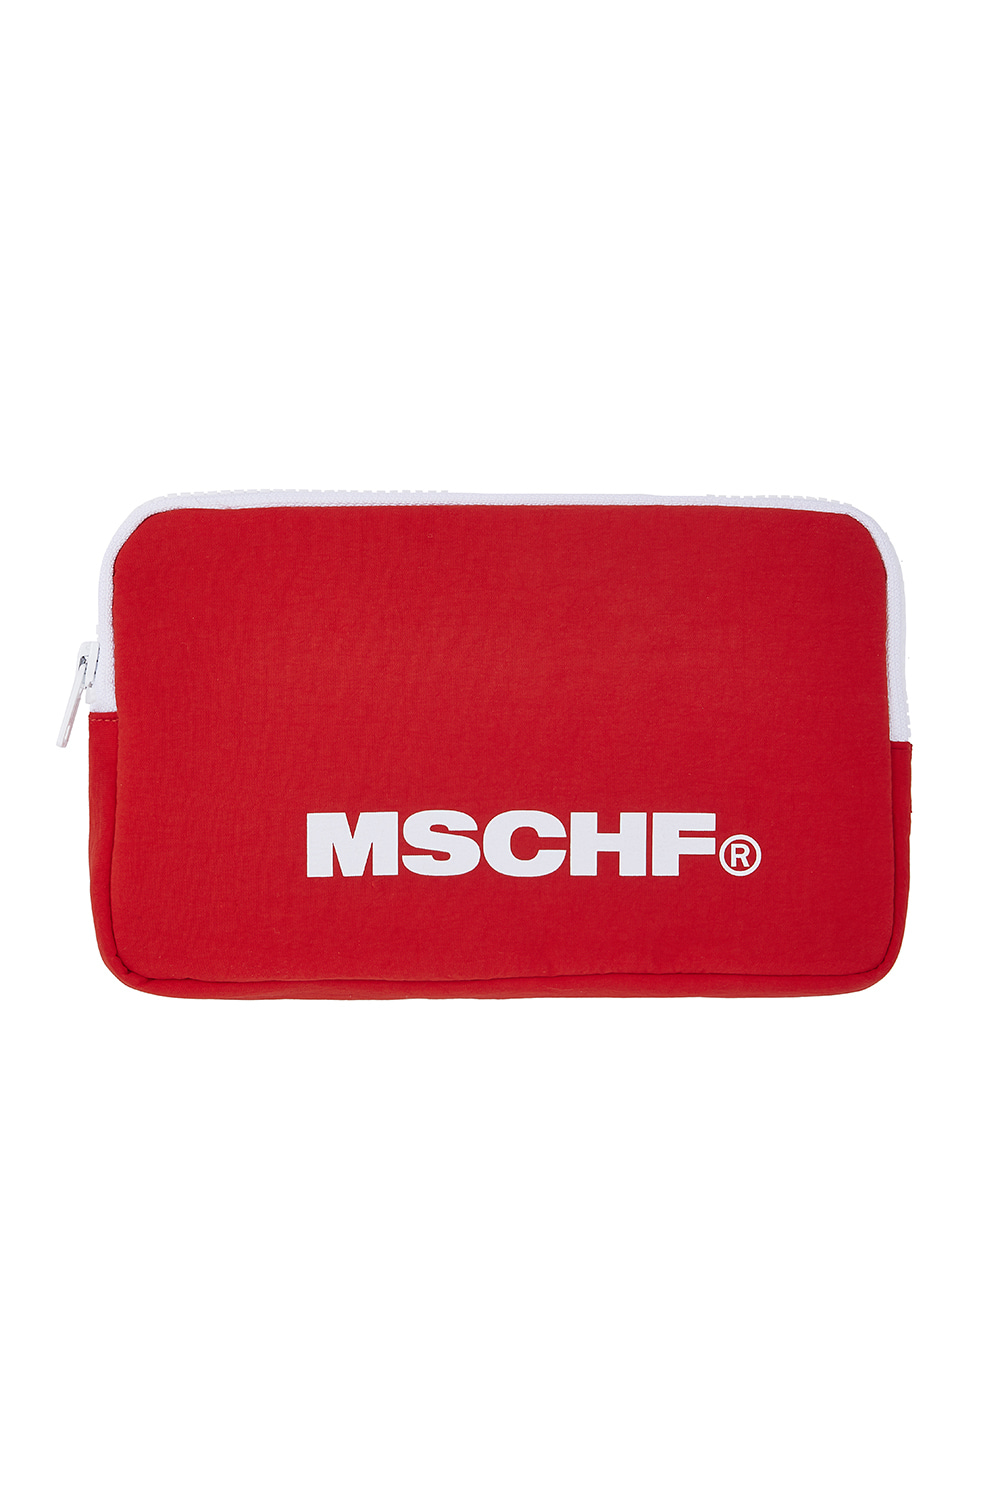 MSCHF_POUCH_red/white